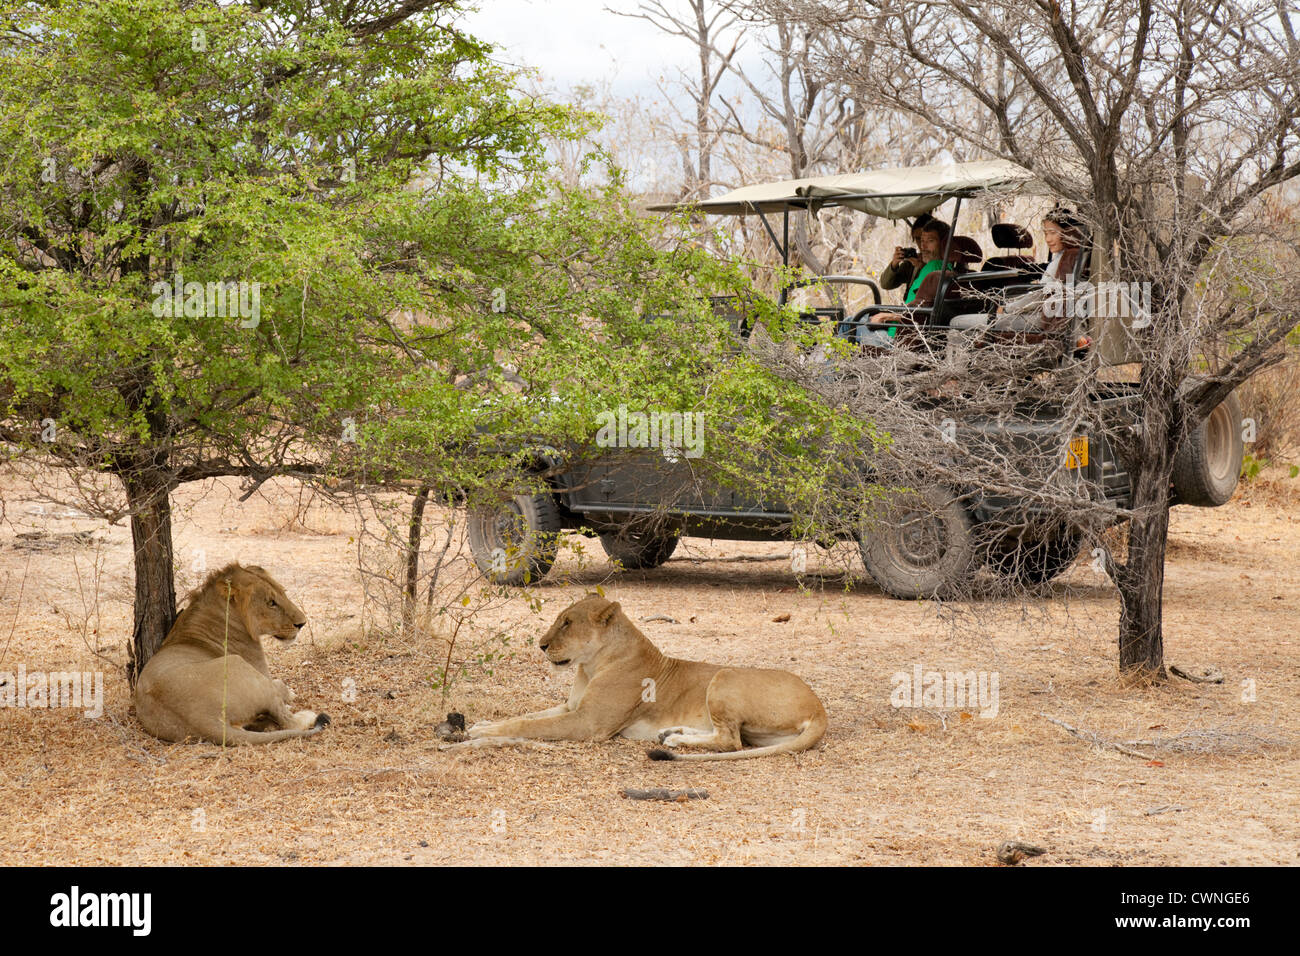 Jeep safari with lions, Selous Game Reserve Tanzania Africa - Stock Image